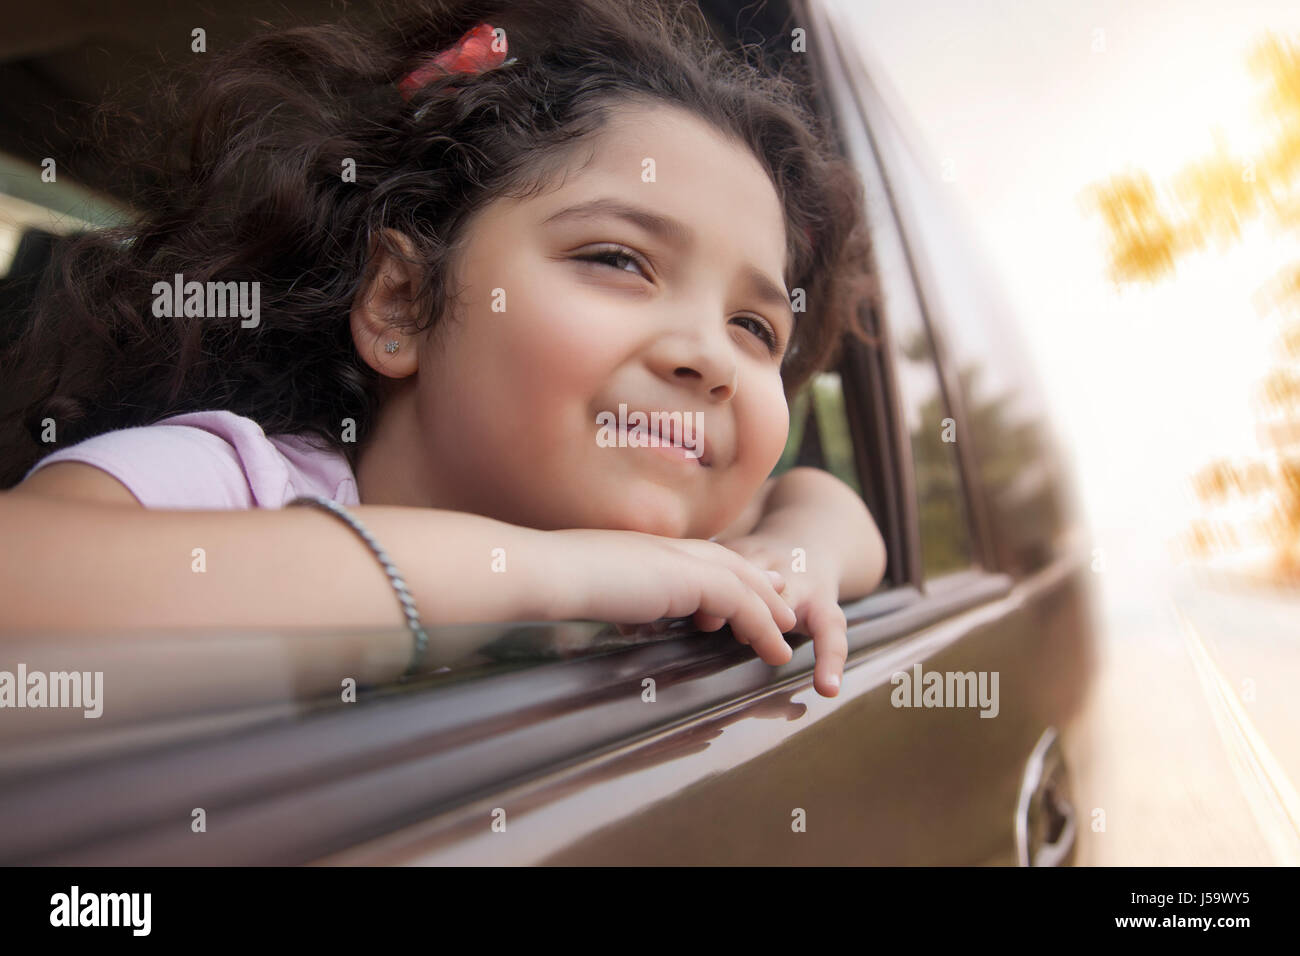 Girl looking out car window Photo Stock